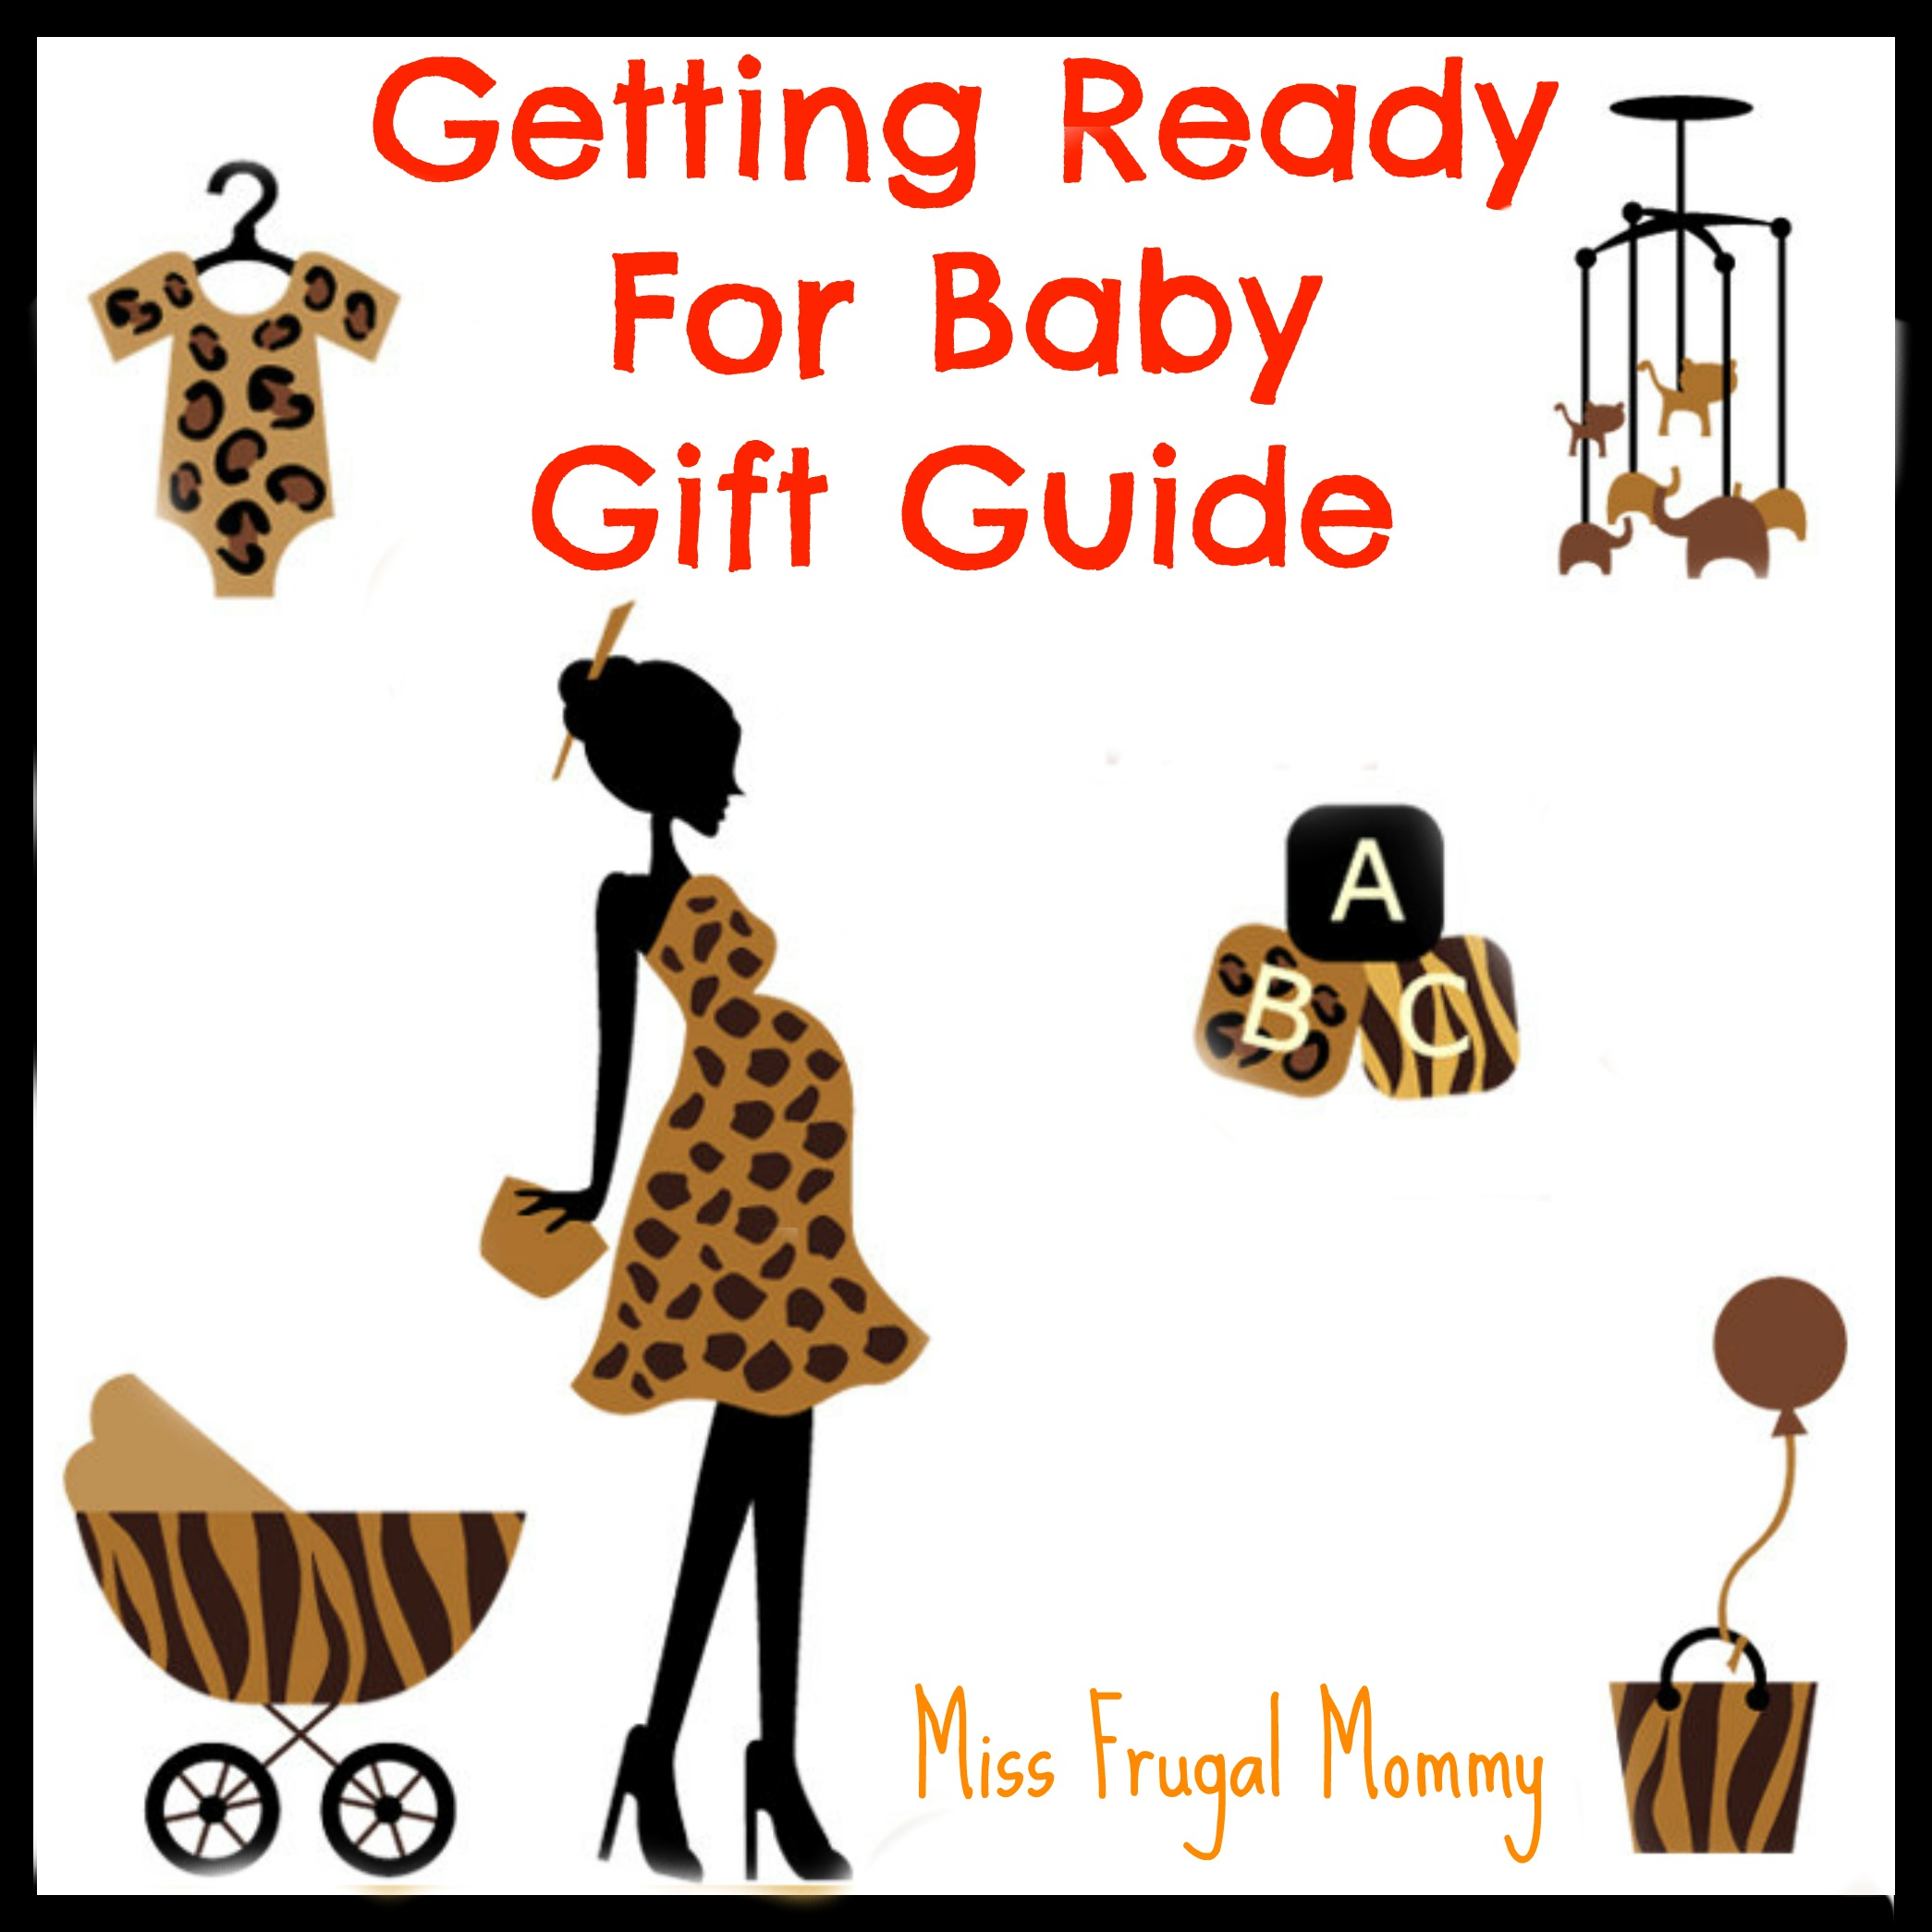 Getting Ready For Baby Gift Guide